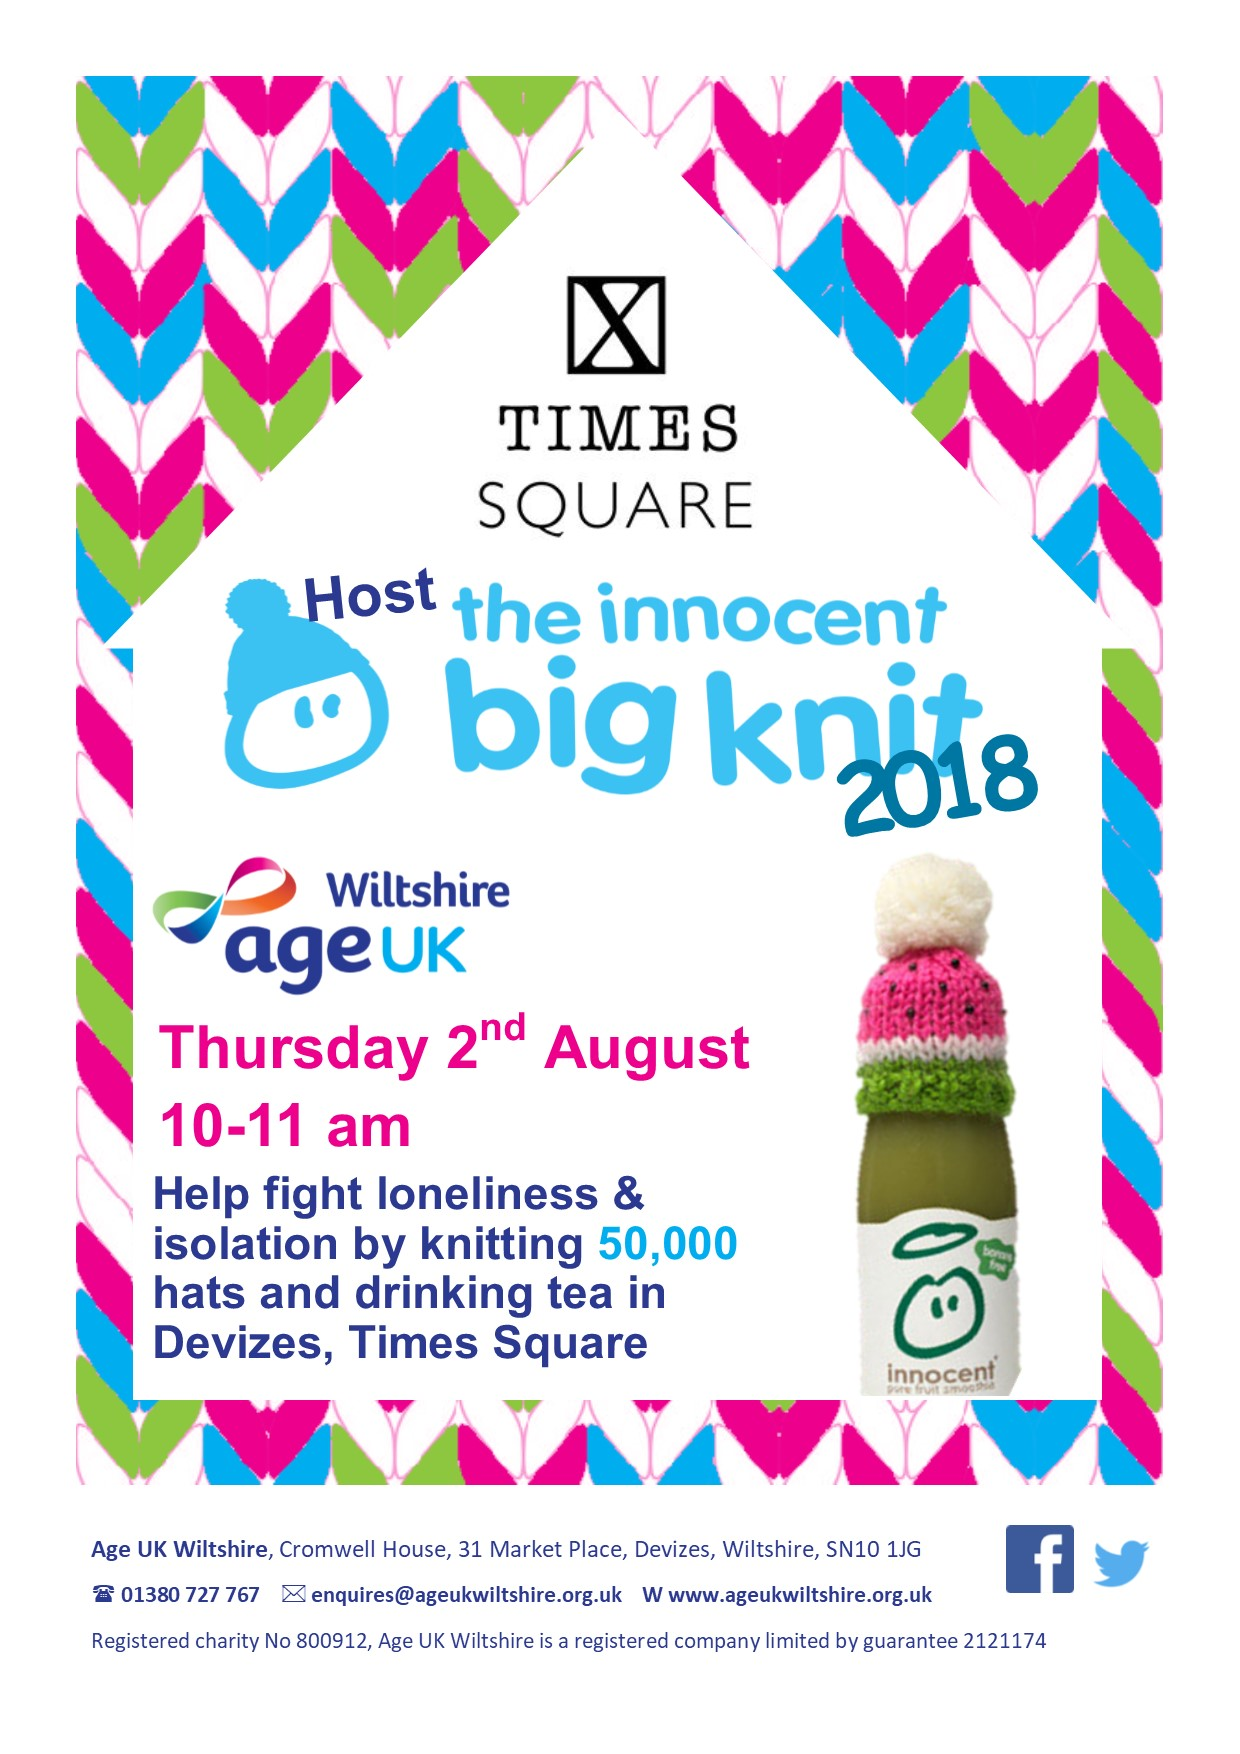 Times Square Host the Big Knit